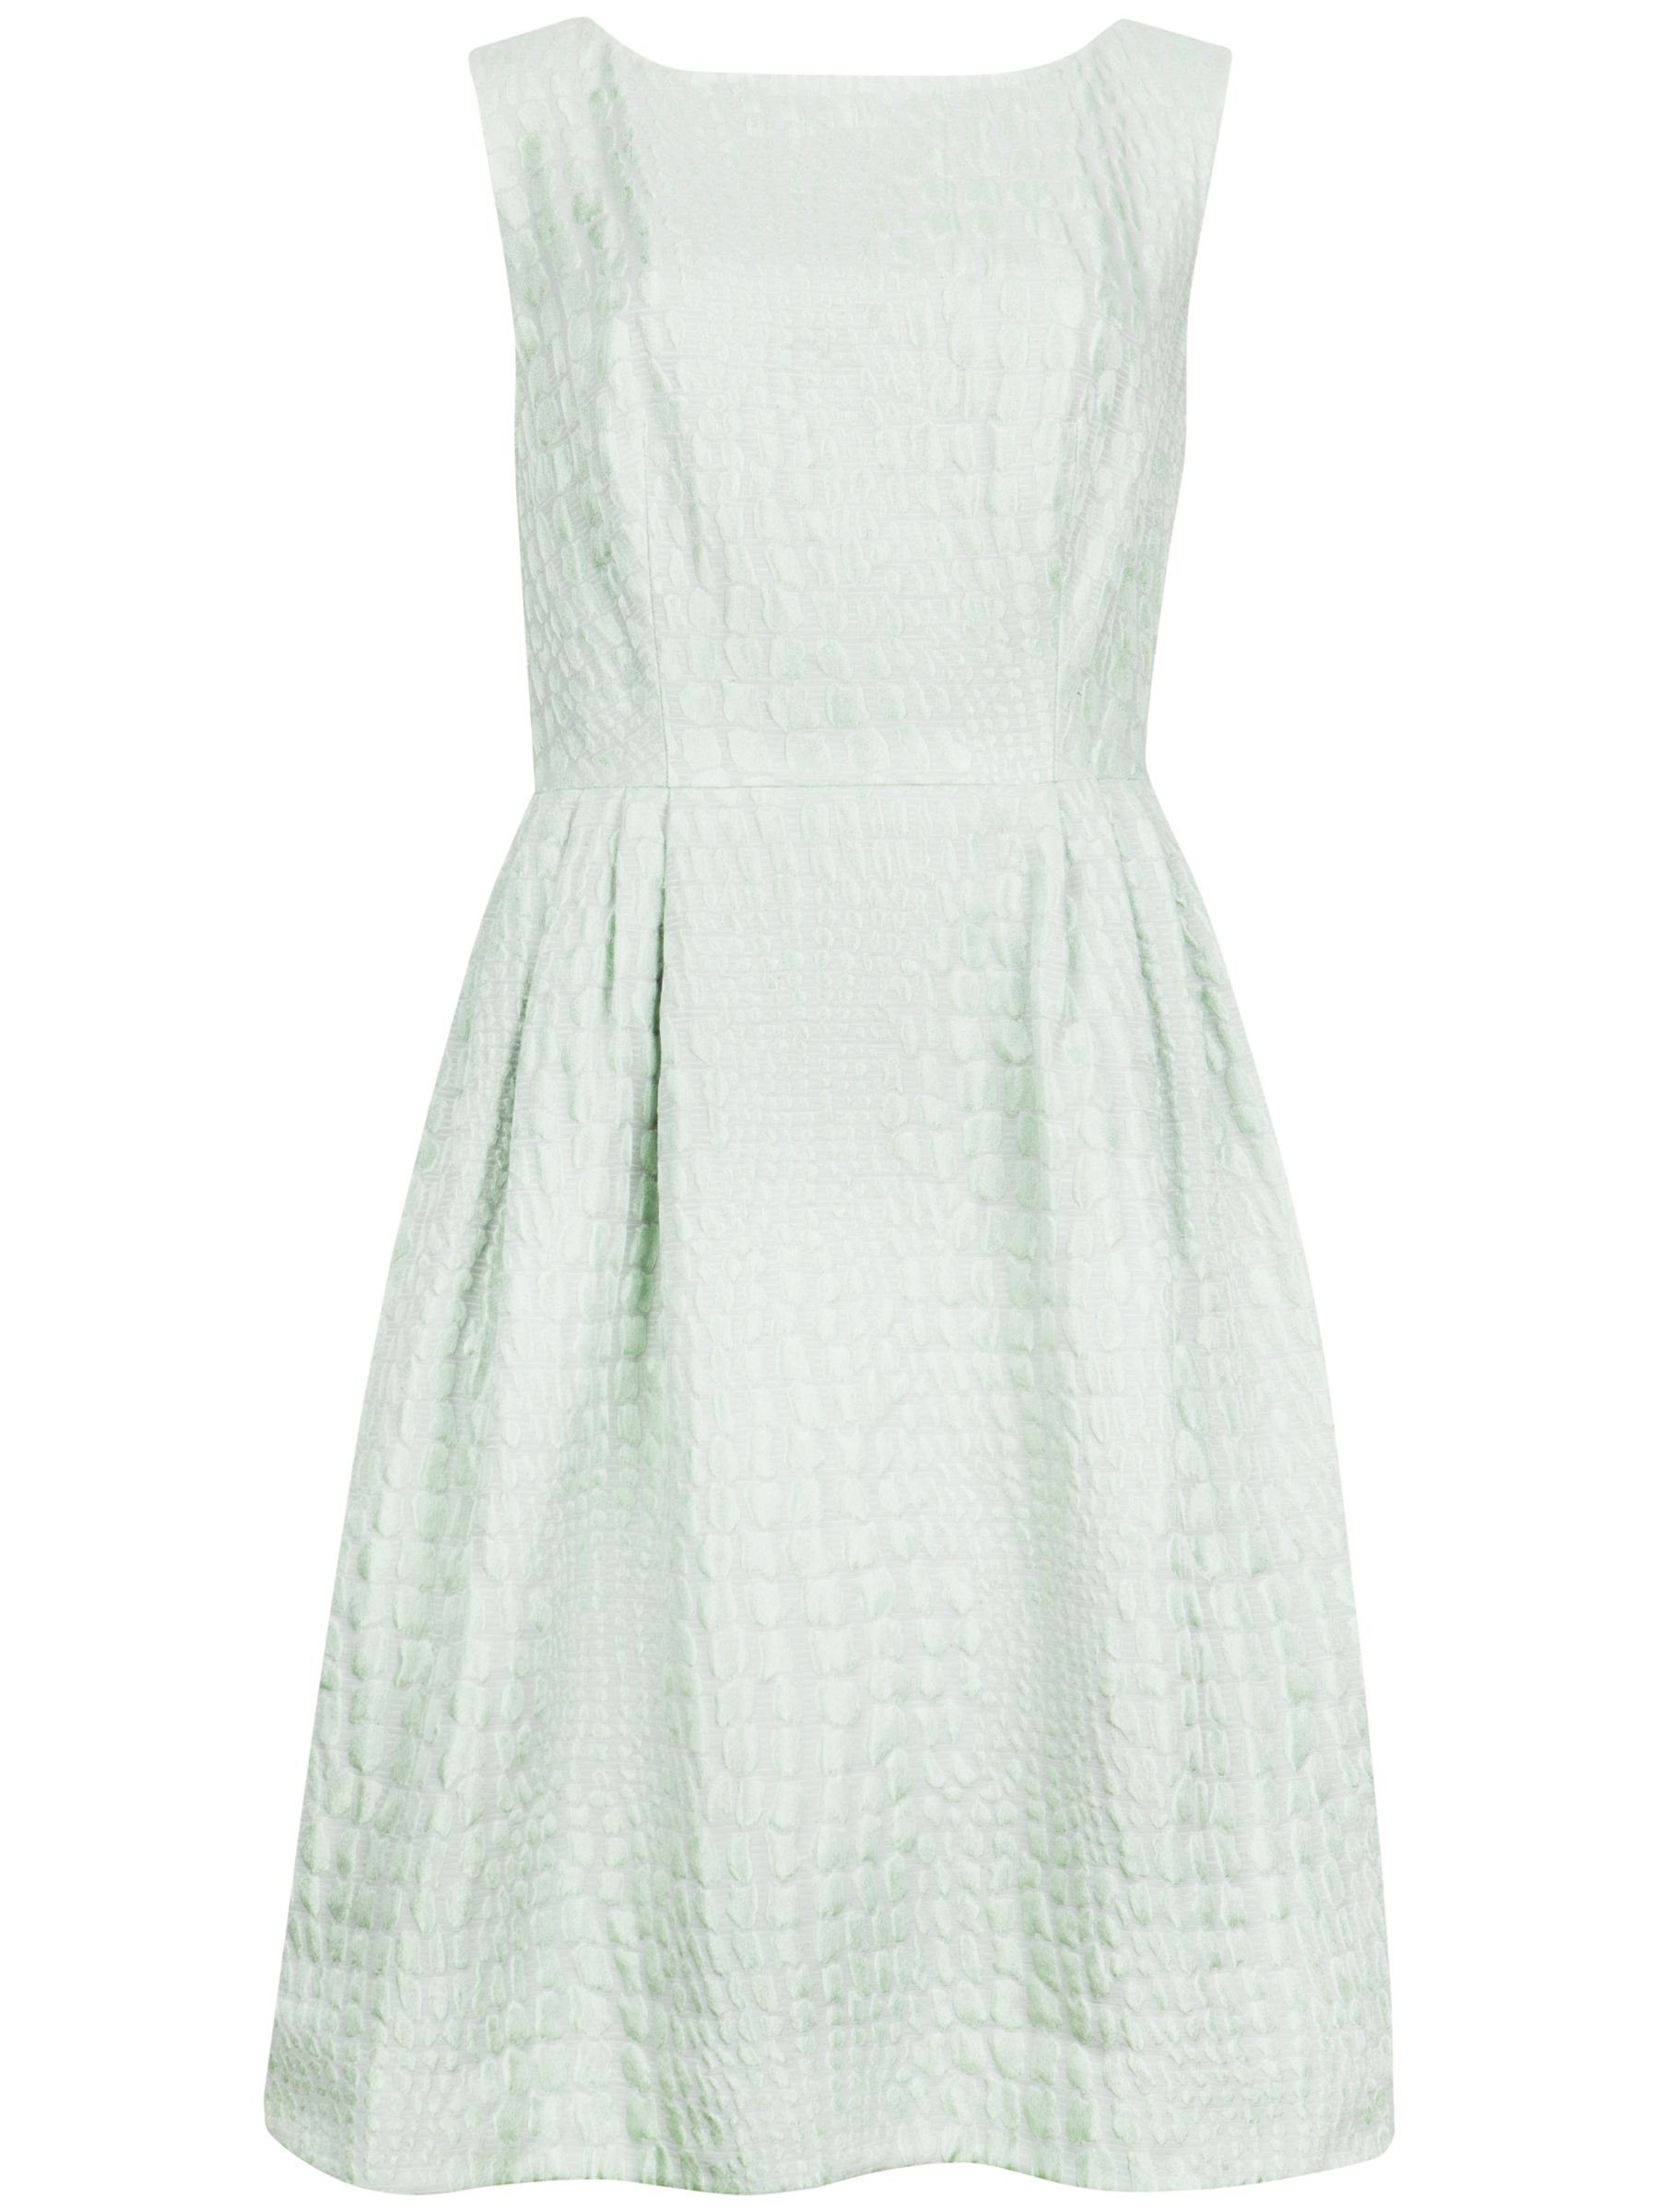 ted baker kaleen textured fit and flare dress mint, ted, baker, kaleen, textured, fit, flare, dress, mint, ted baker, 1|2|3|4|0|5, edition magazine, ss15 trend pastels, women, womens dresses, gifts, wedding, wedding clothing, female guests, adult bridesmaids, fashion magazine, womenswear, men, brands l-z, 1907157